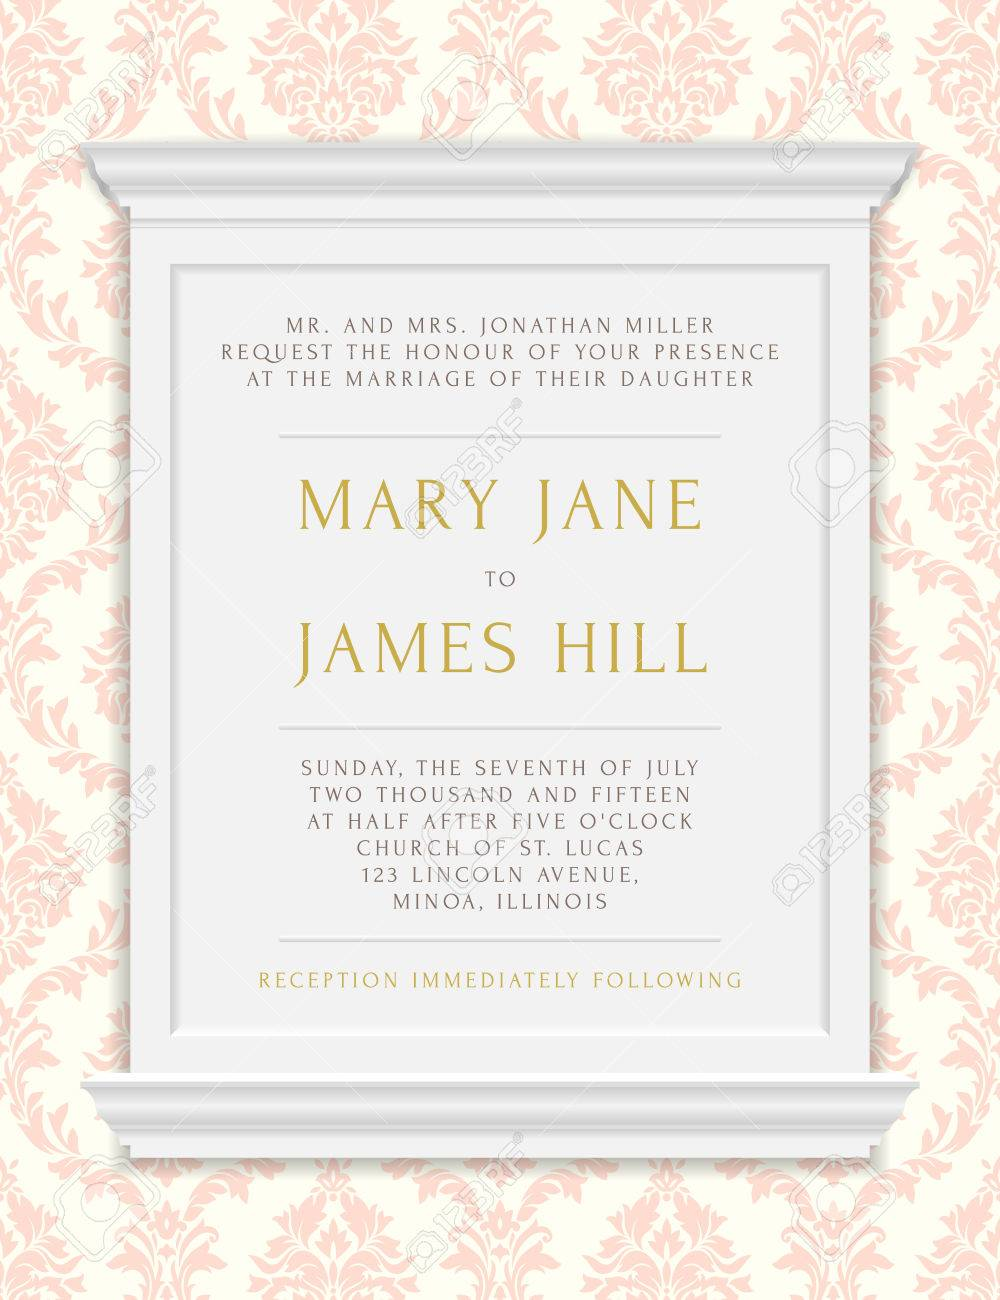 Invitation To The Wedding Or Announcements. Vector Vintage Frame ...